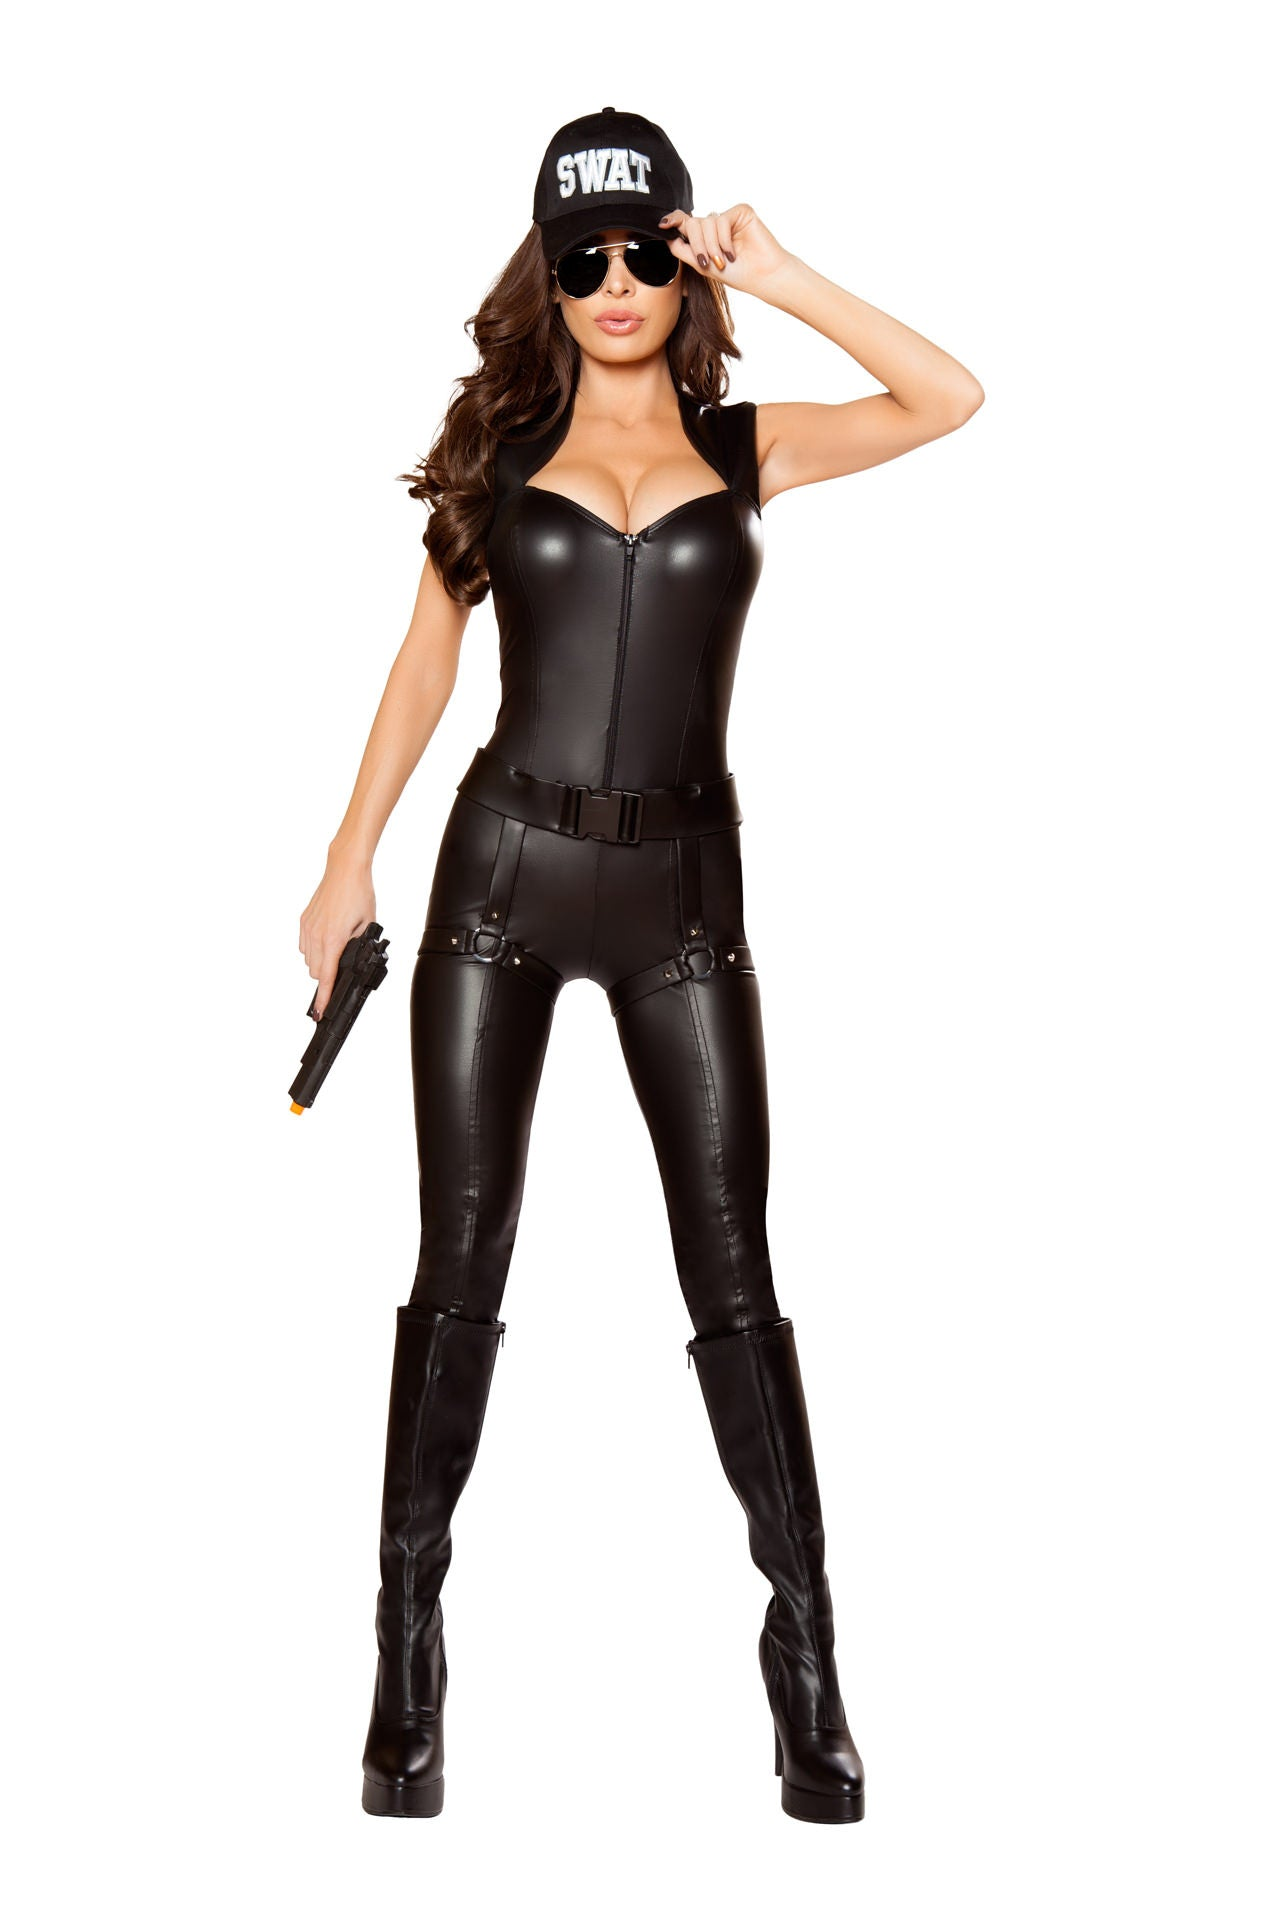 10066 - 2pc SWAT Commander ${description} | Roma Costume and Roma Confidential wholesale manufacturer of Women Apparel bulk world wide wholesale and world wide drop ship services for Adult Halloween Costumes, Sexy and Elegant Lingerie, Rave Clothing, Club wear, and Christmas Costumes. Costumes,Blowout Sale, Roma Costume, Inc., Roma Costume, Roma Confidential, Wholesale clothing, drop ship, drop ship service, Wholesale Lingerie, Wholesale Adult Halloween Costumes, Rave Clothing, EDM Clothing, Festival Wear, Christmas Costumes, Clubwear, Club wear.